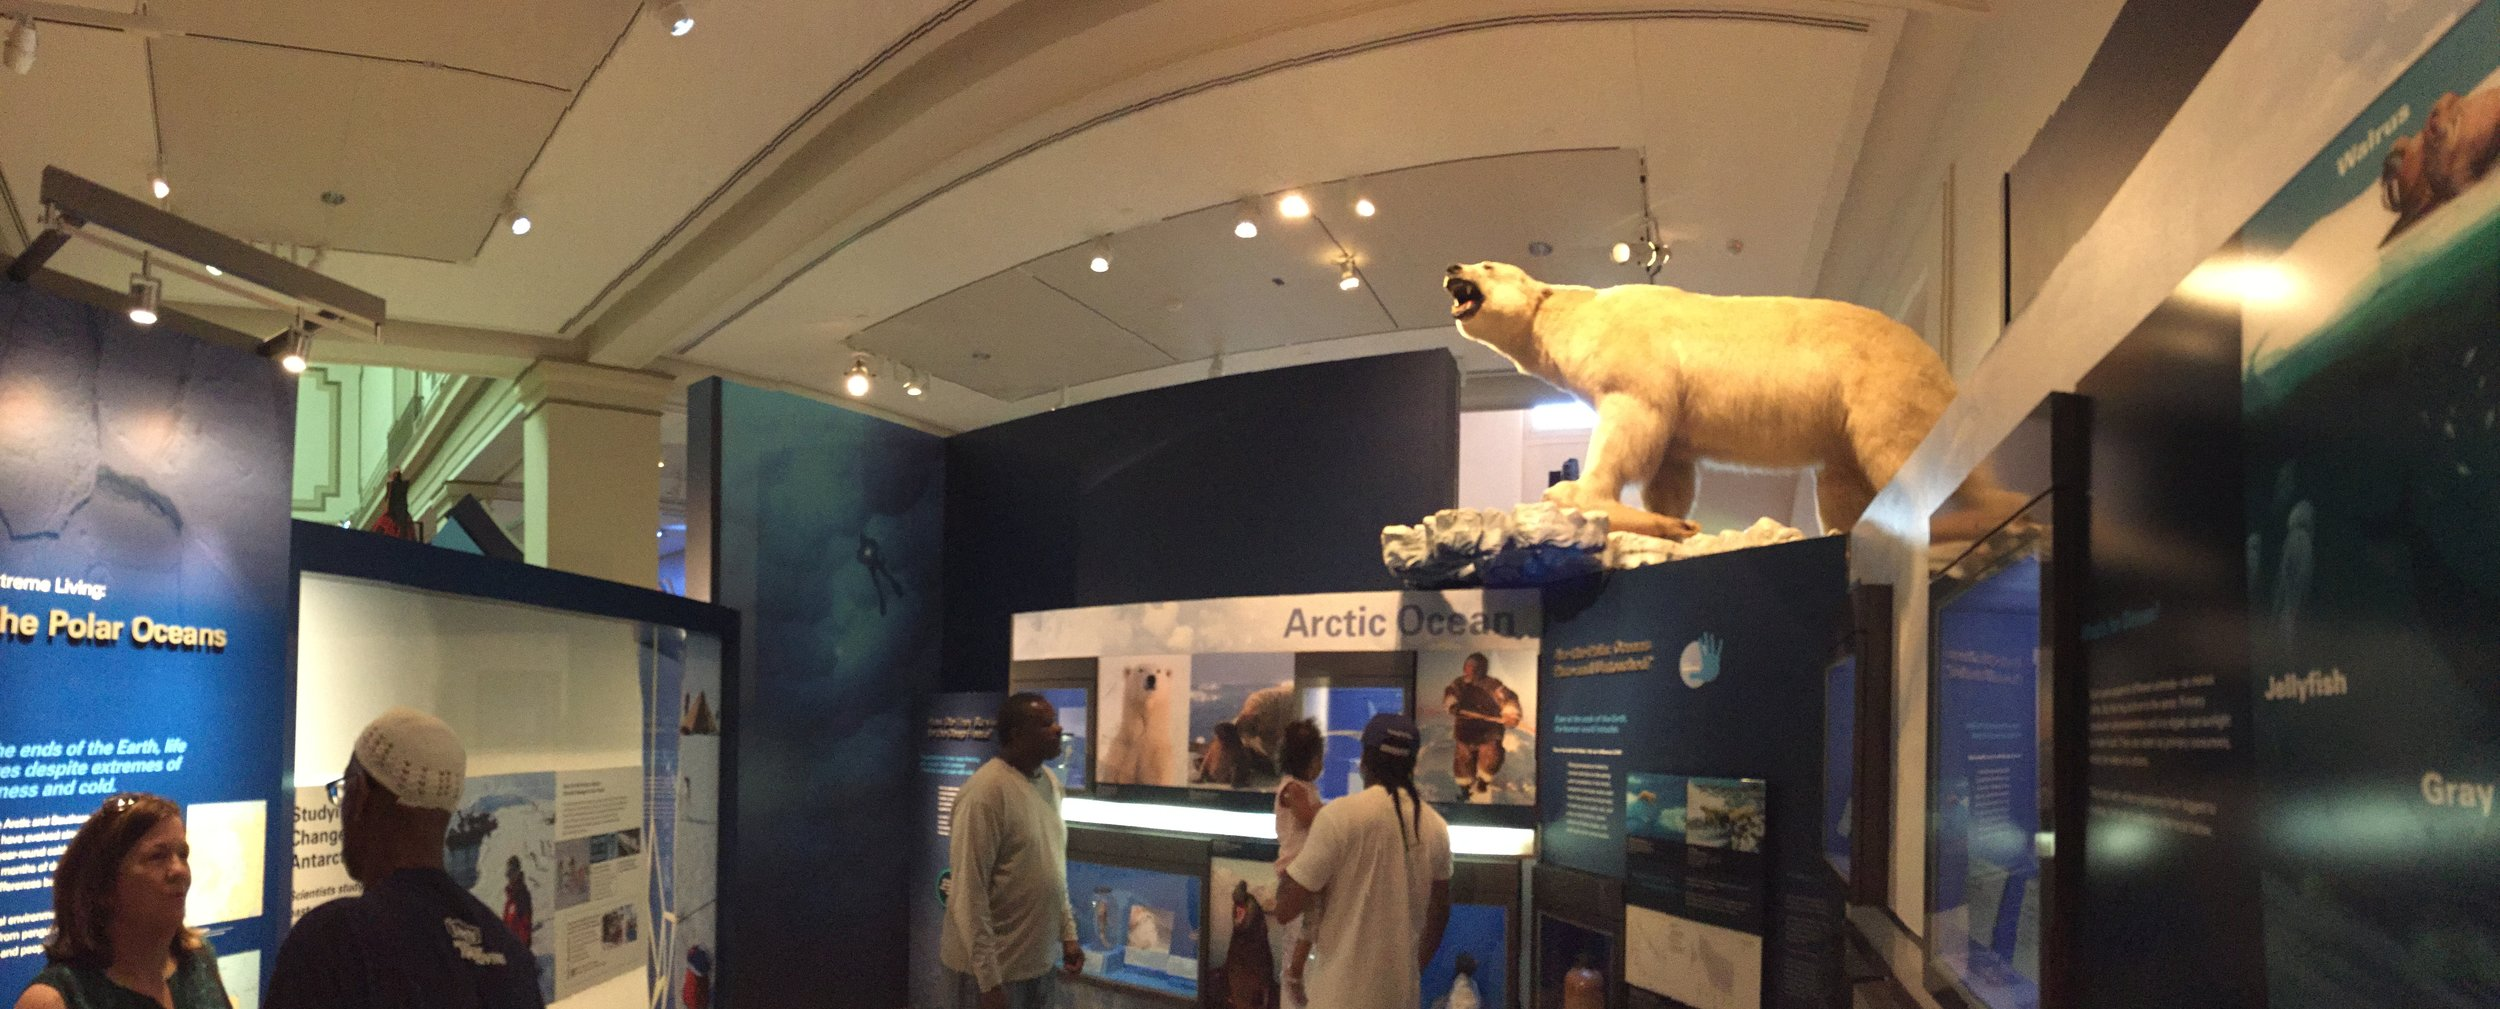 Crowds filled the halls of the Smithsonian National Museum of Natural History in Washington, D.C. to learn about all things Arctic. The Arctic Spring Festival, May 8-10, 2015, was held to celebrate the people, cultures and science of the region. The festival marks the United States' 2015-2017 chairmanship of the Arctic Council.